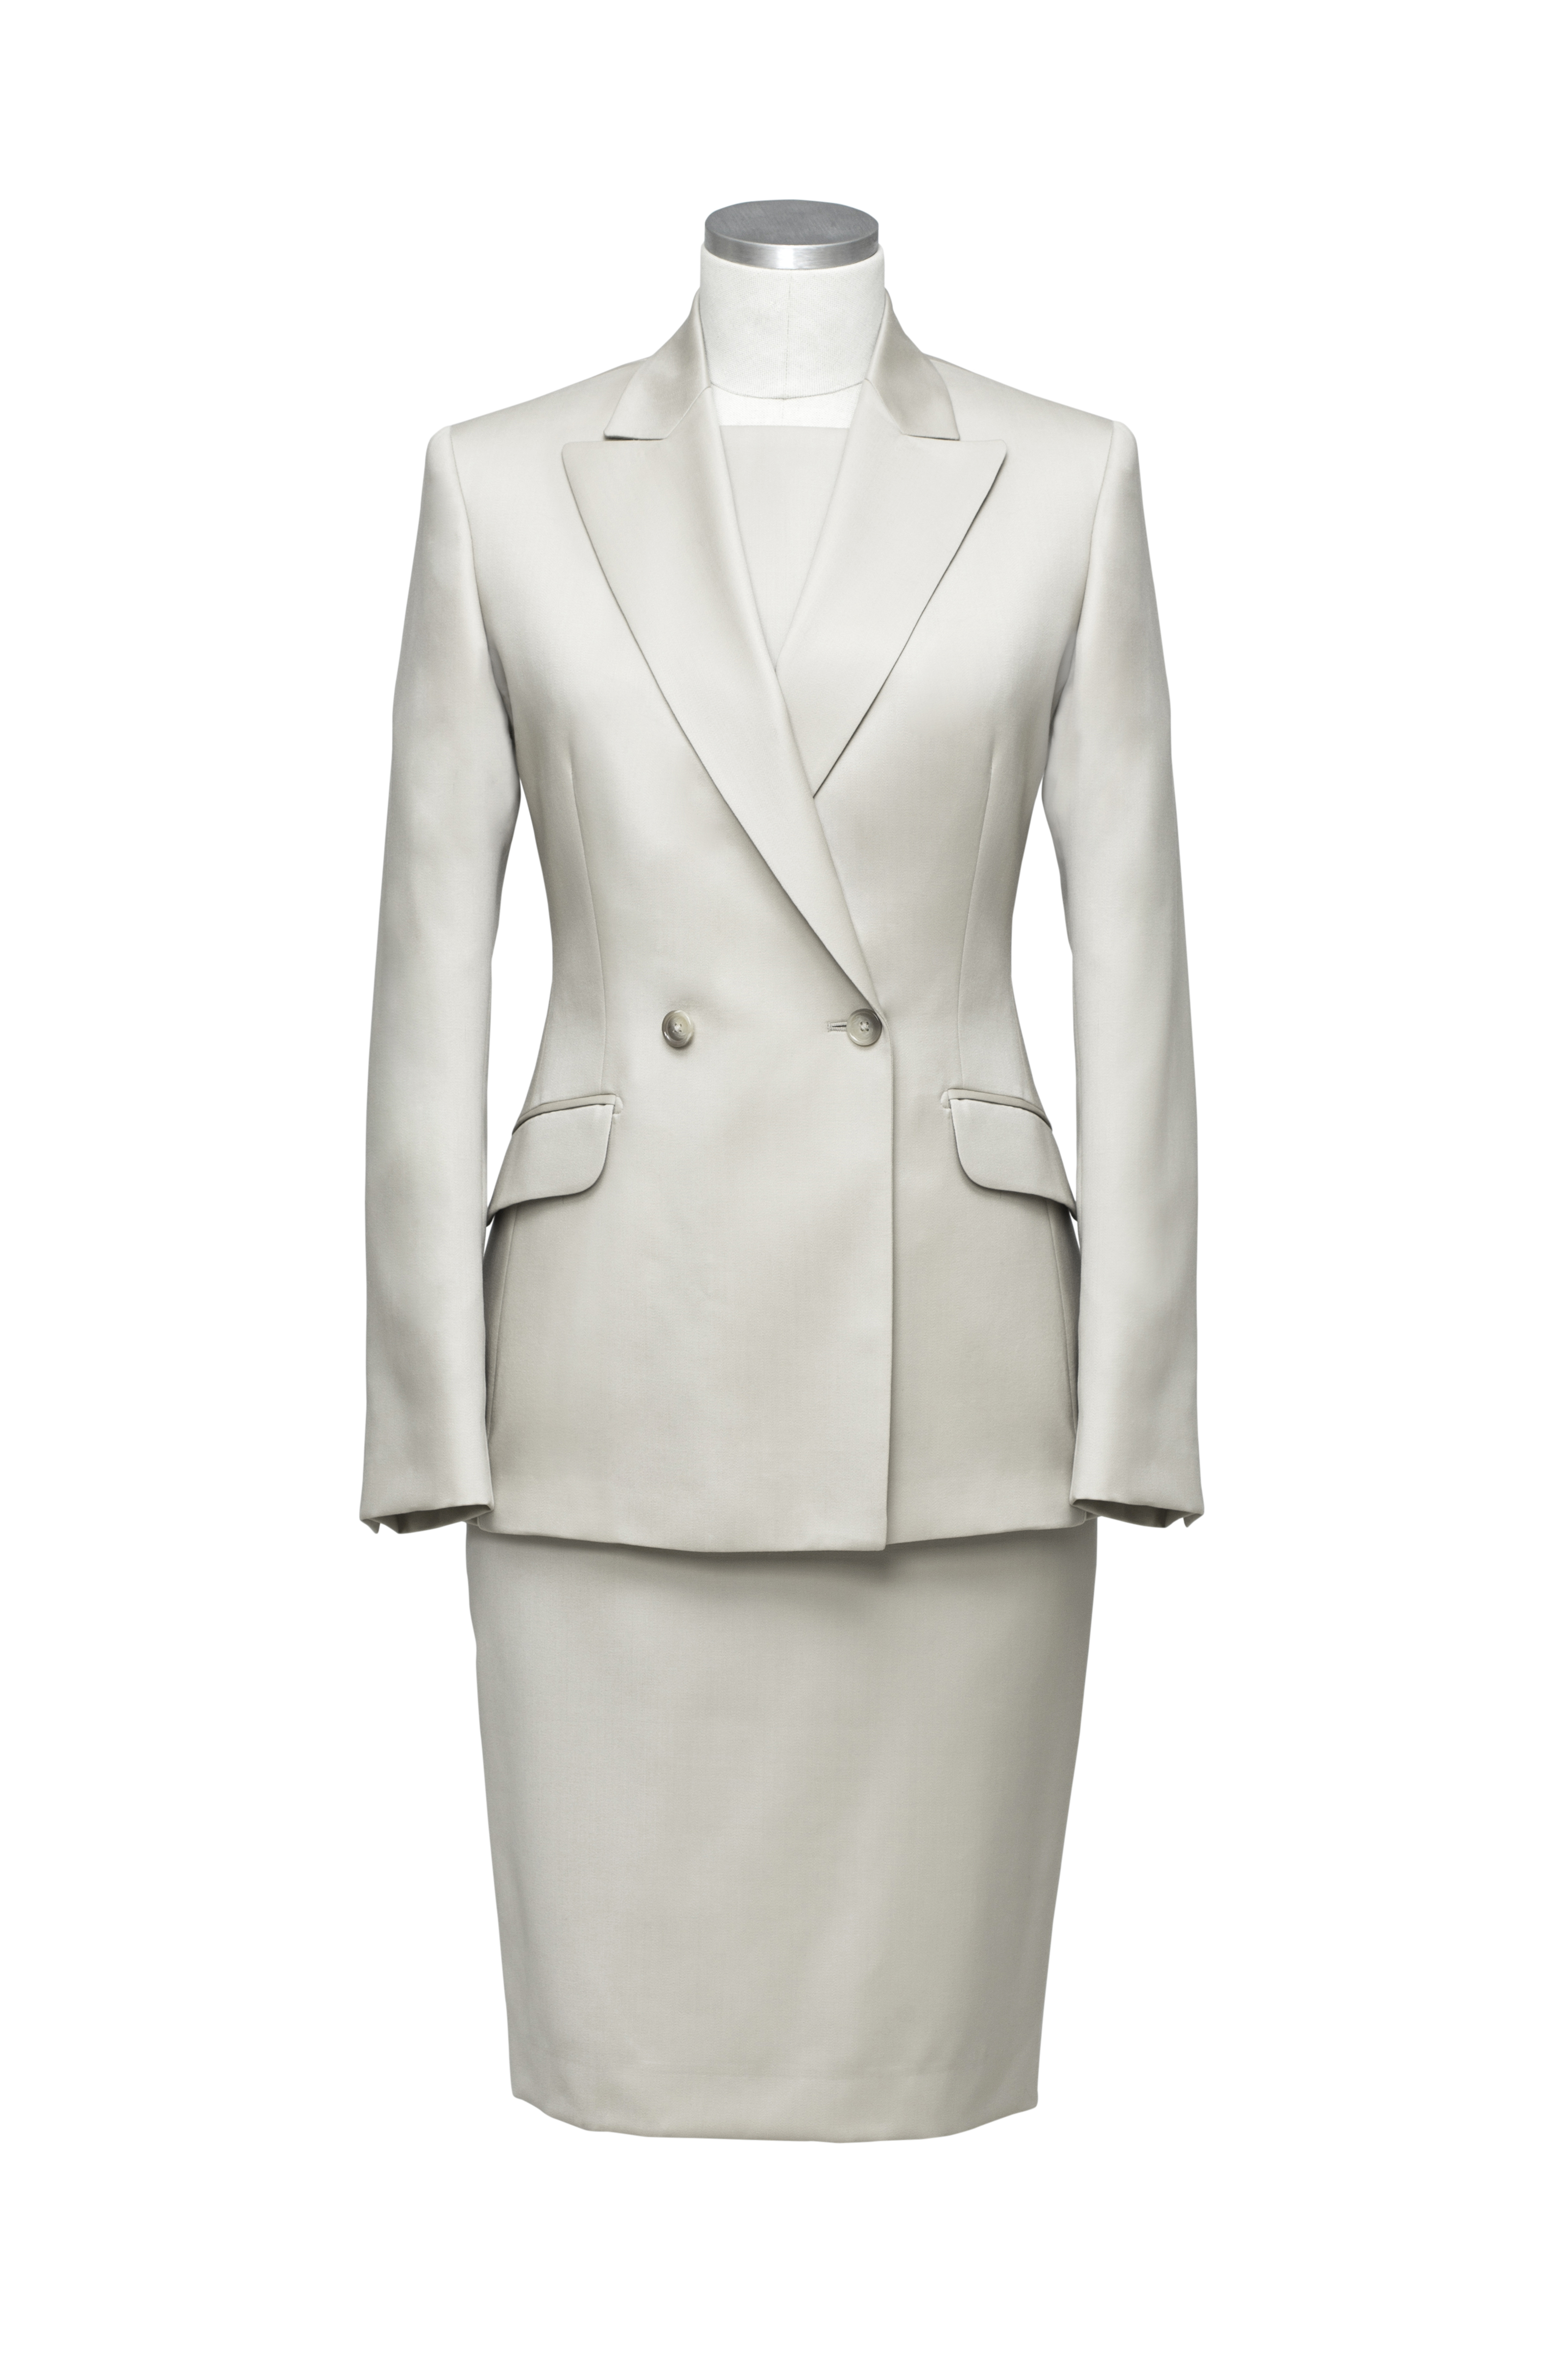 www.richardfox.co Ladies off white double breasted suit